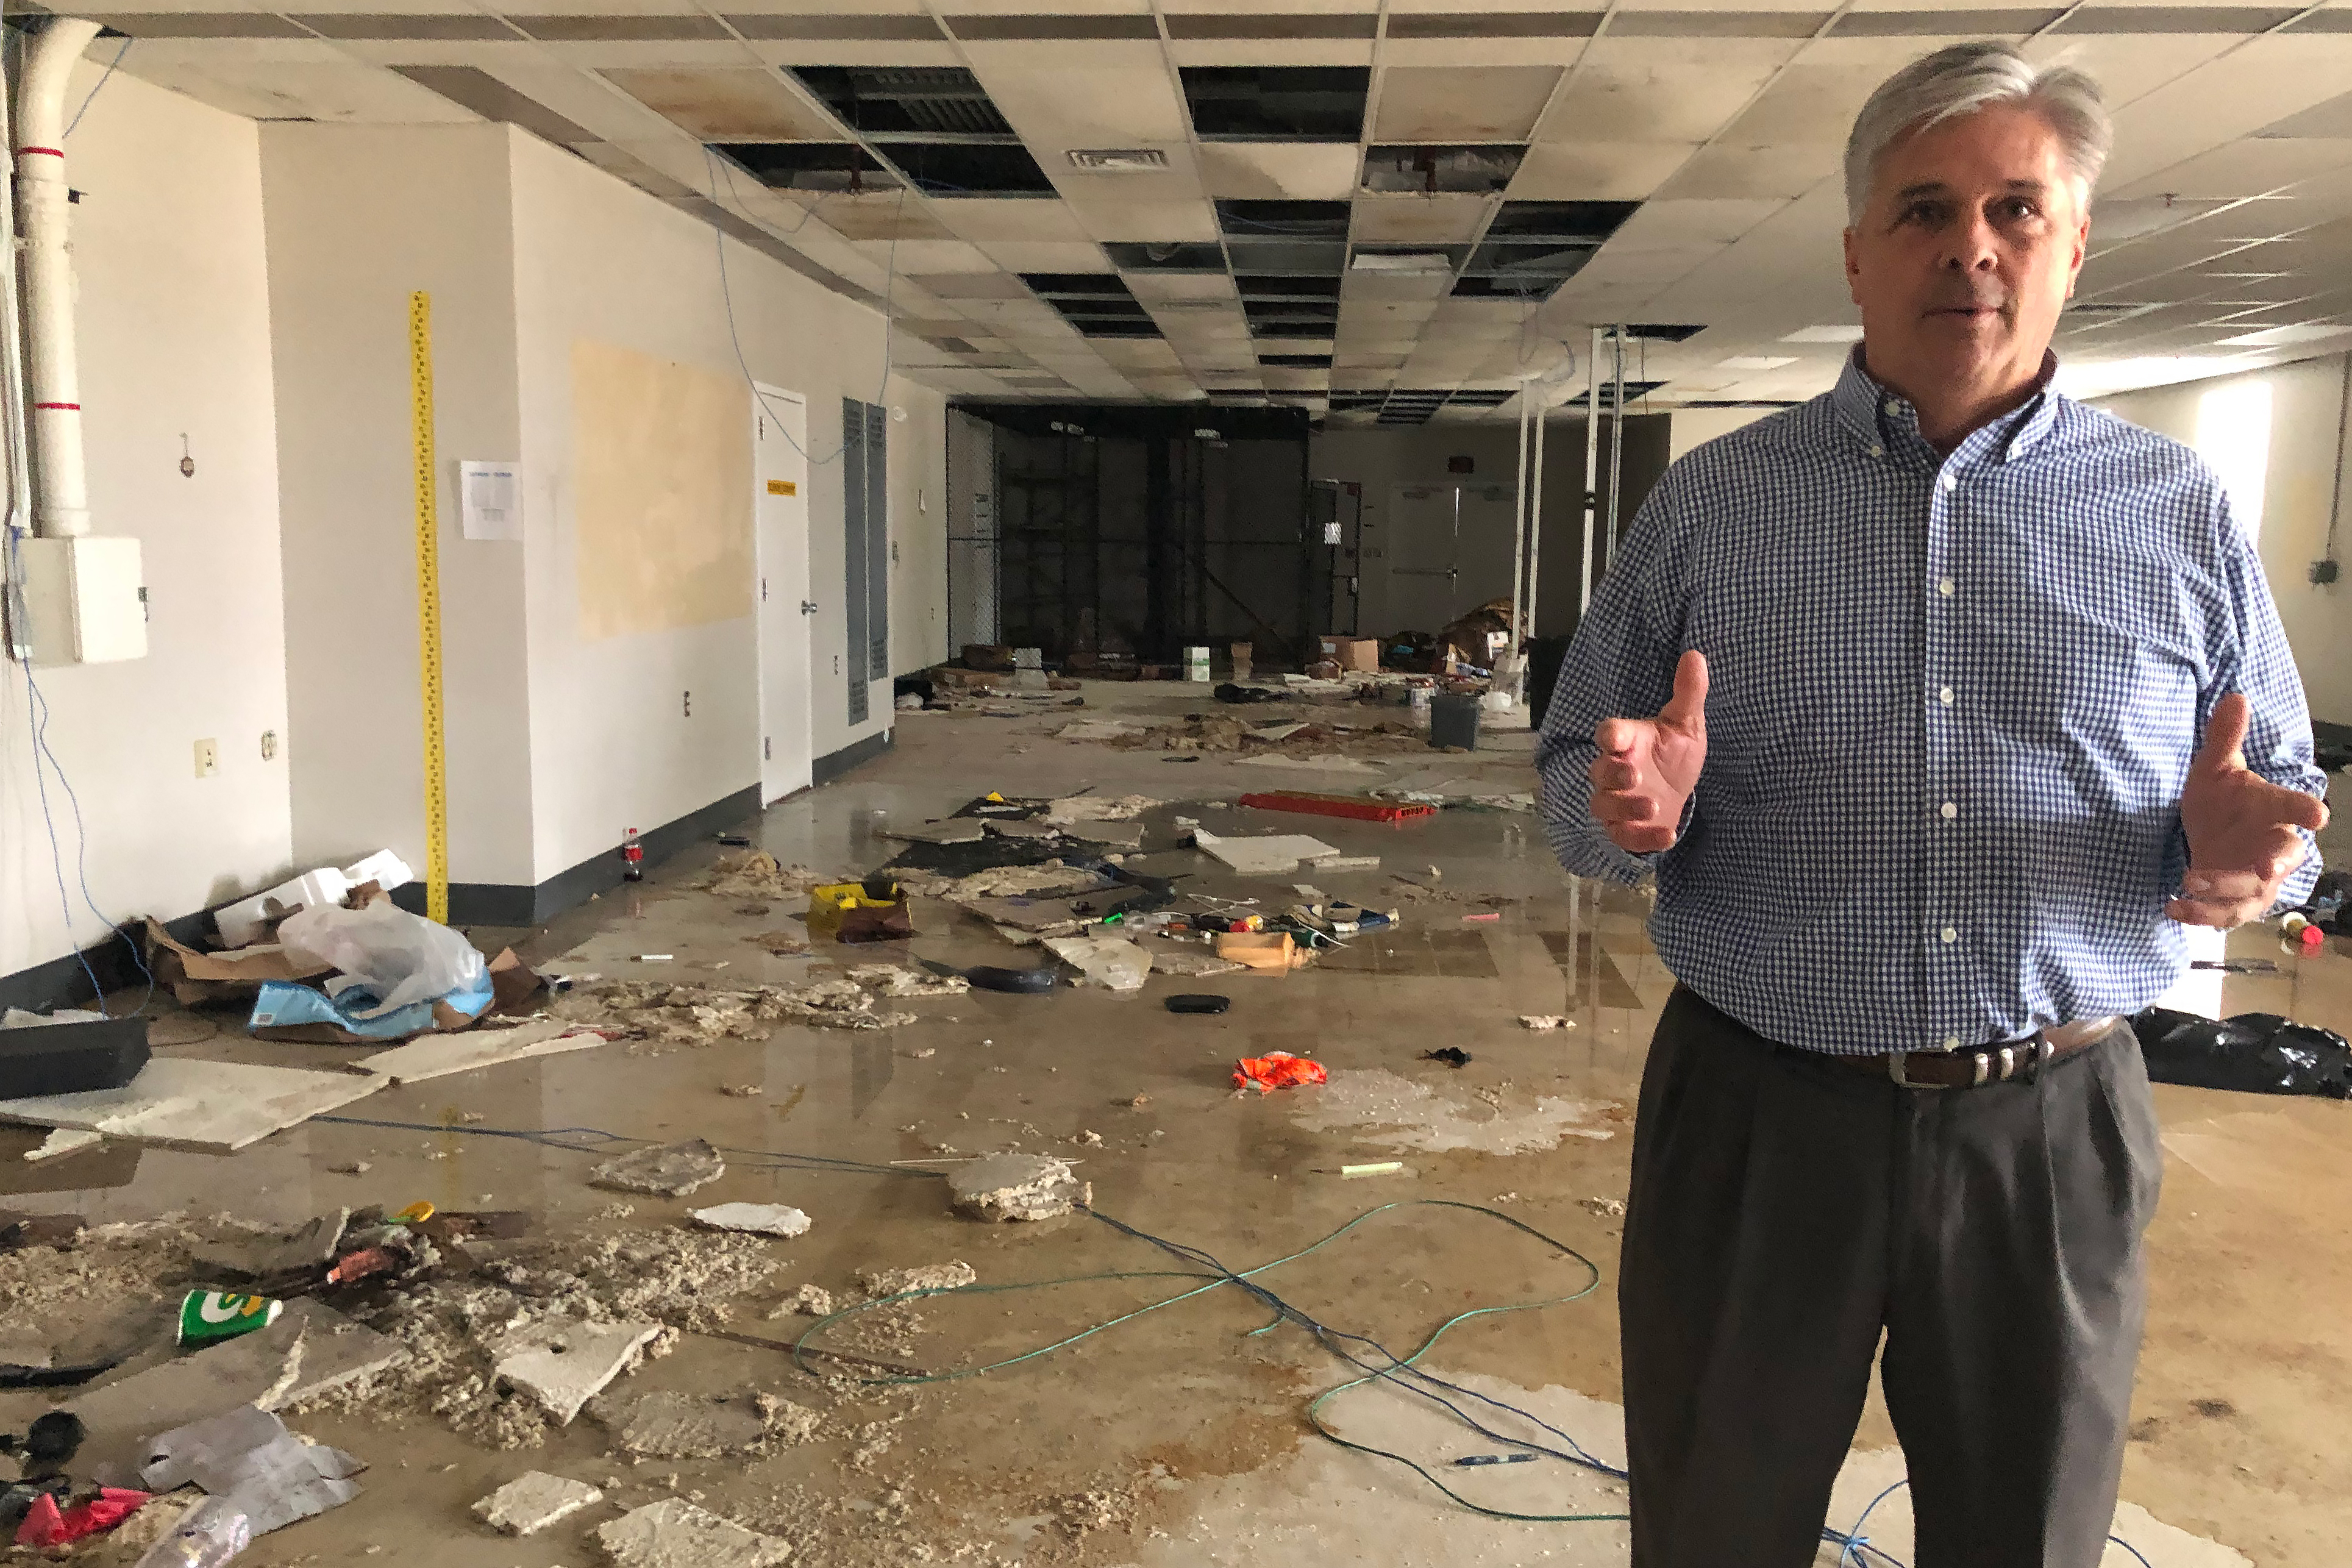 Caption: Tony Sholar of the Marine Corps stands in the abandoned headquarters of a Marine unit at Camp Lejeune. The building was damaged in Hurricane Florence, and rainwater still pours through damaged roof., Credit: Jay Price / American Homefront